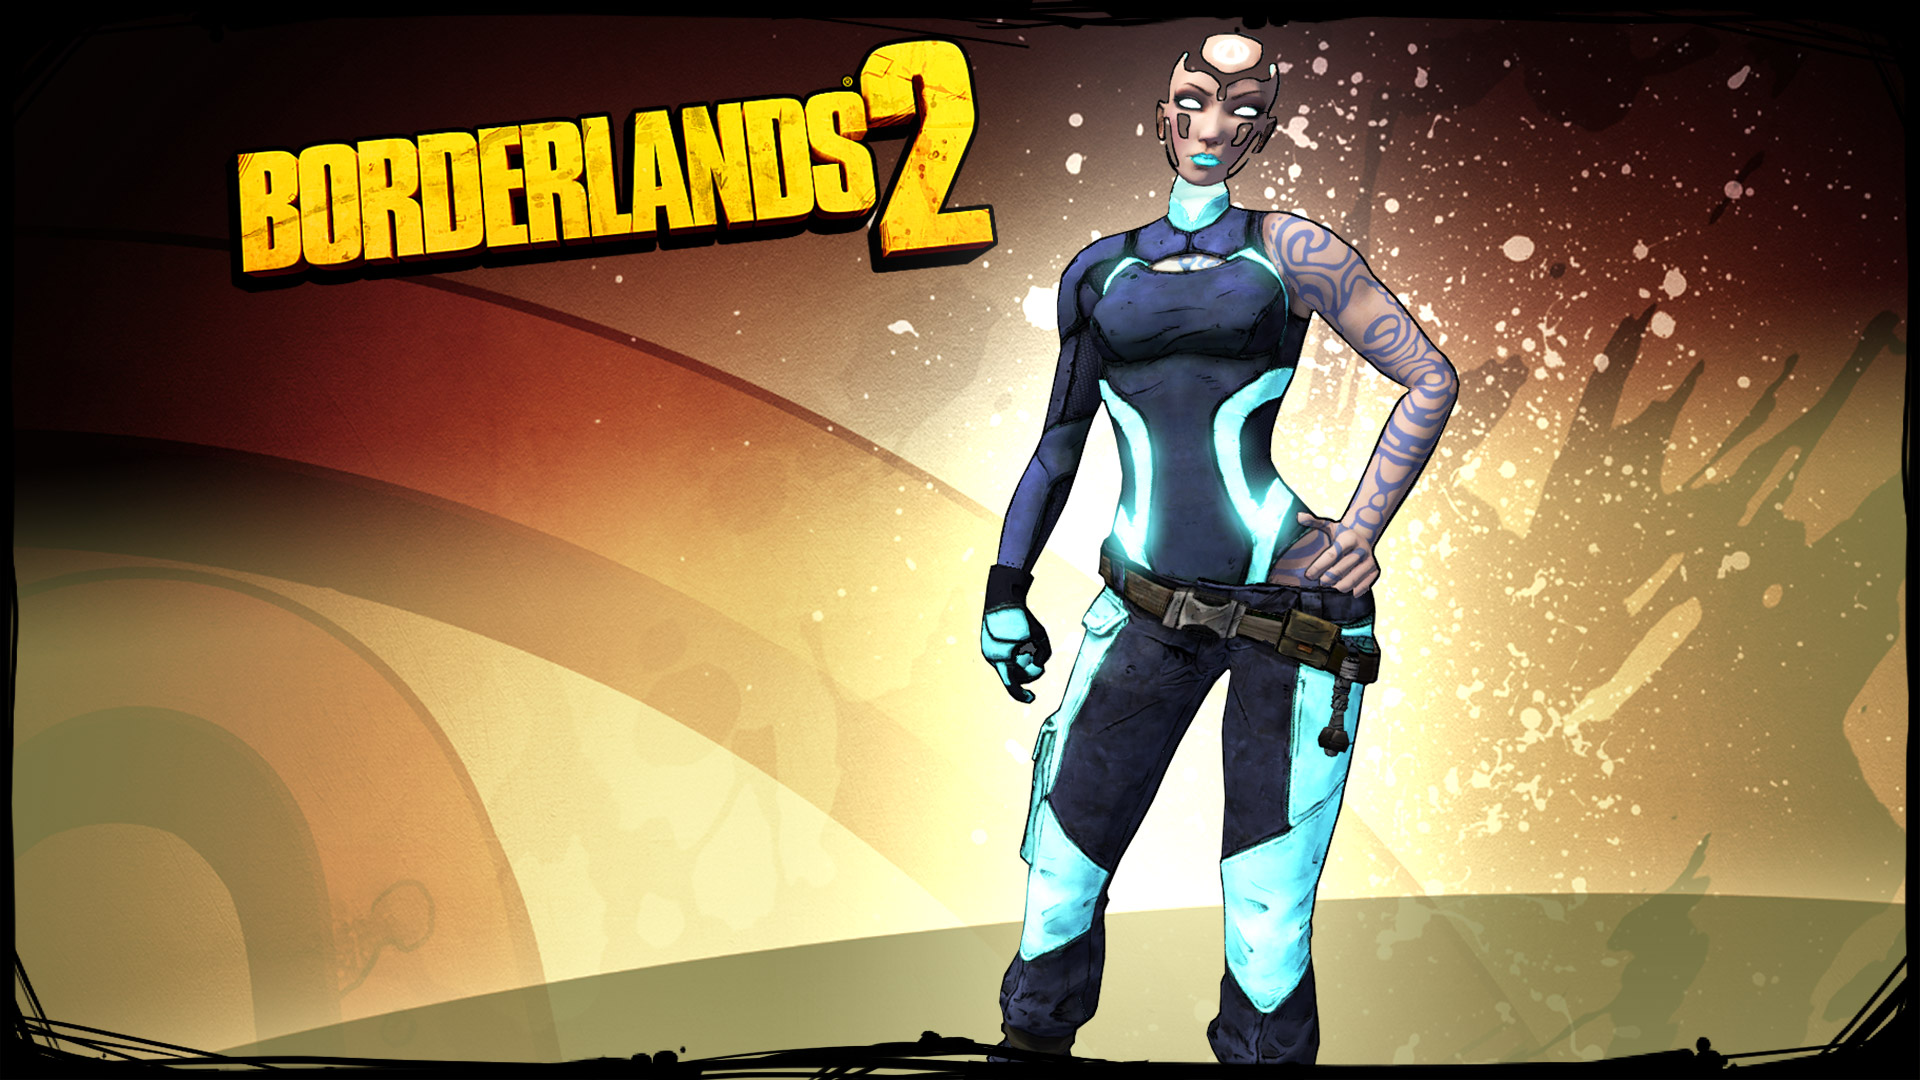 New character skins for Borderlands 2 now for sale